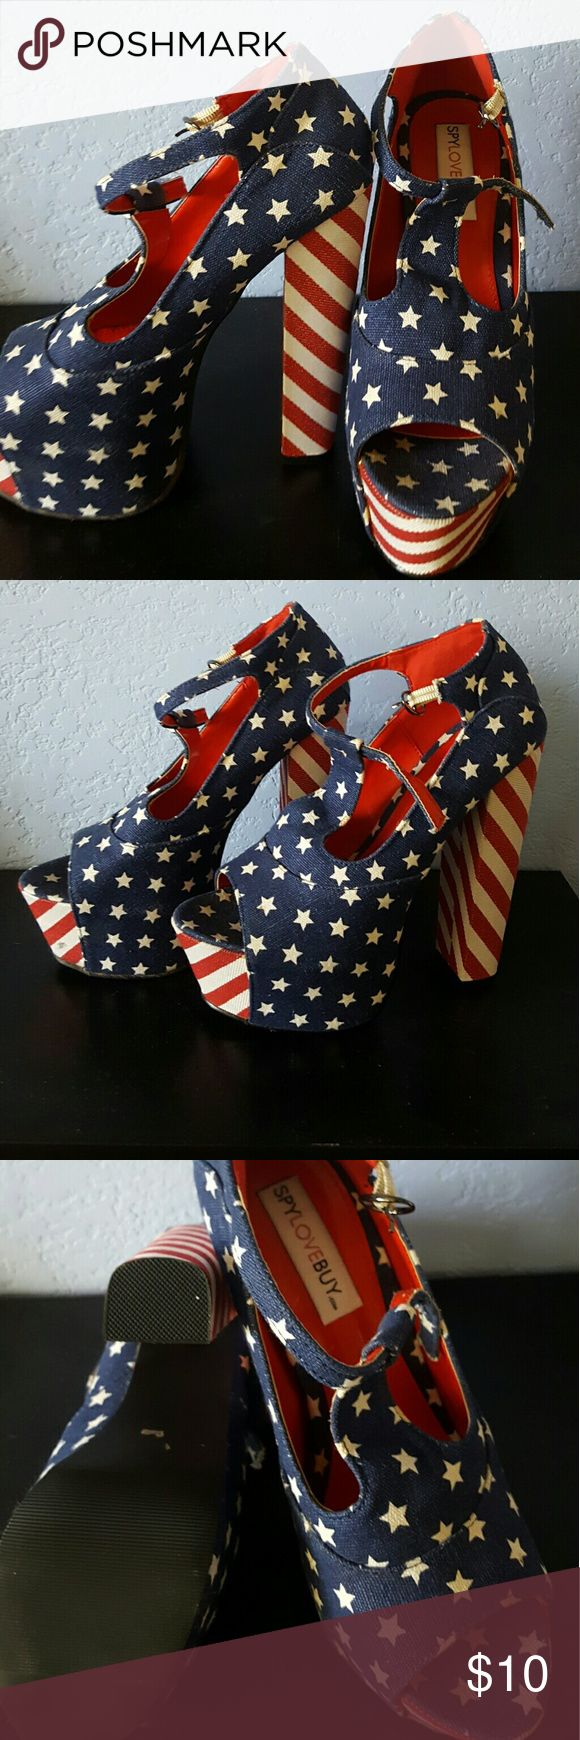 Wonder woman platforms Halloween Perfect Wonder Woman Halloween Costume or a rowdy 4th of July! These American flag platforms have never been worn. The platform measures 2 and a half inches and the heel is 6 inches so really about 4 inches with consideration of the platform height! Go for it! Shoes